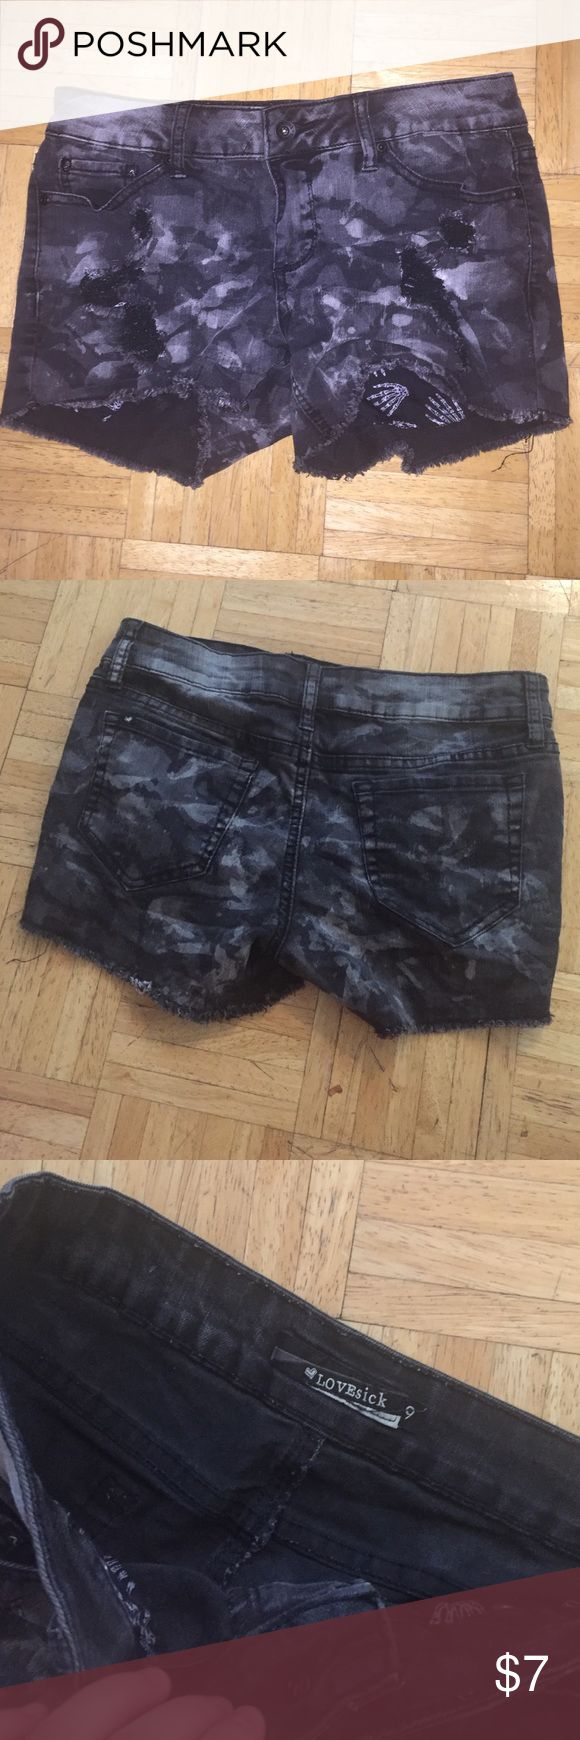 LOVEsick Size 9 Black and Gray Army Shorts LOVEsick Size 9 Black and Gray Army Shorts. Worn quite a few time but still in great shape! 4 pockets and 1 little pocket. Hot Topic. Hot Topic Shorts Jean Shorts